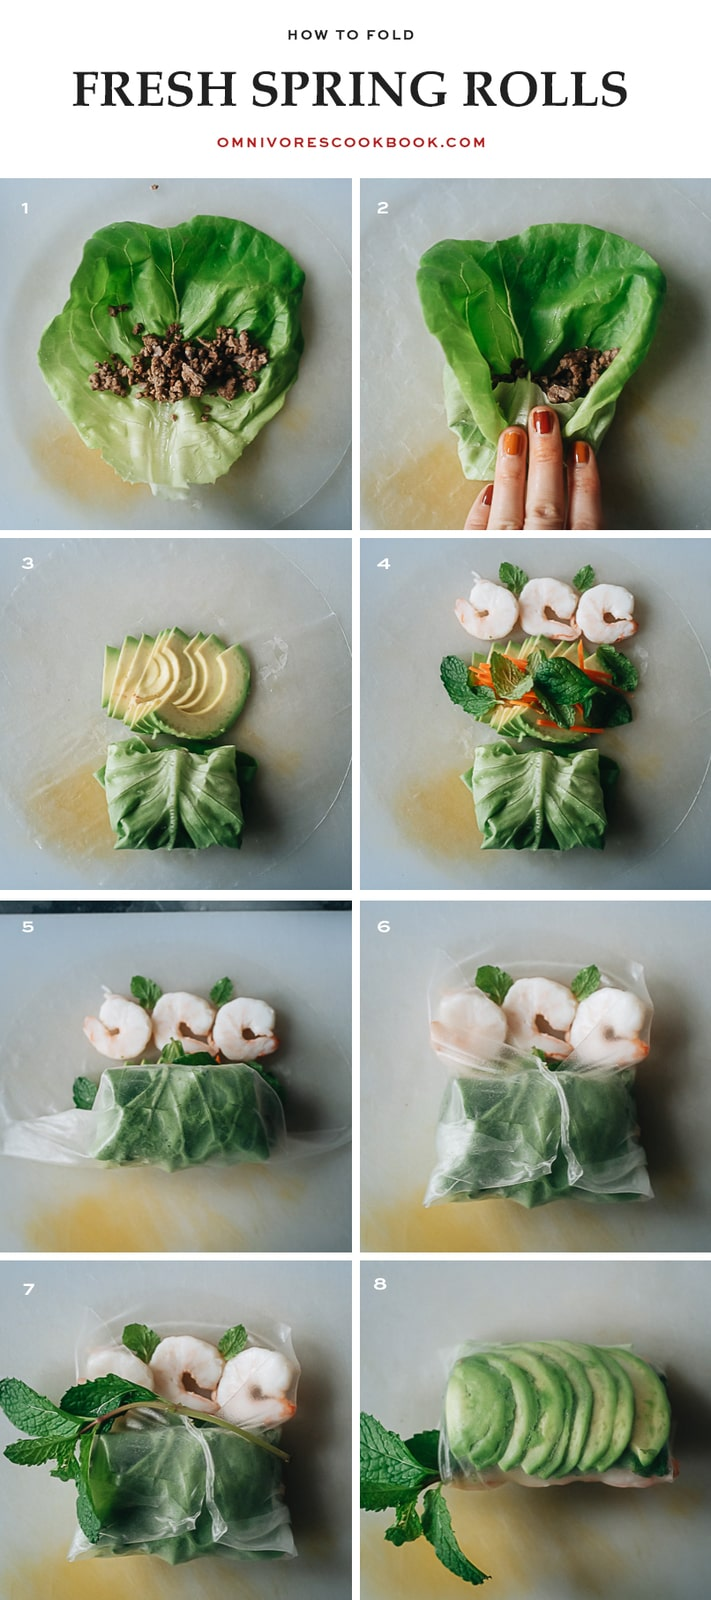 How to fold fresh spring rolls step-by-step